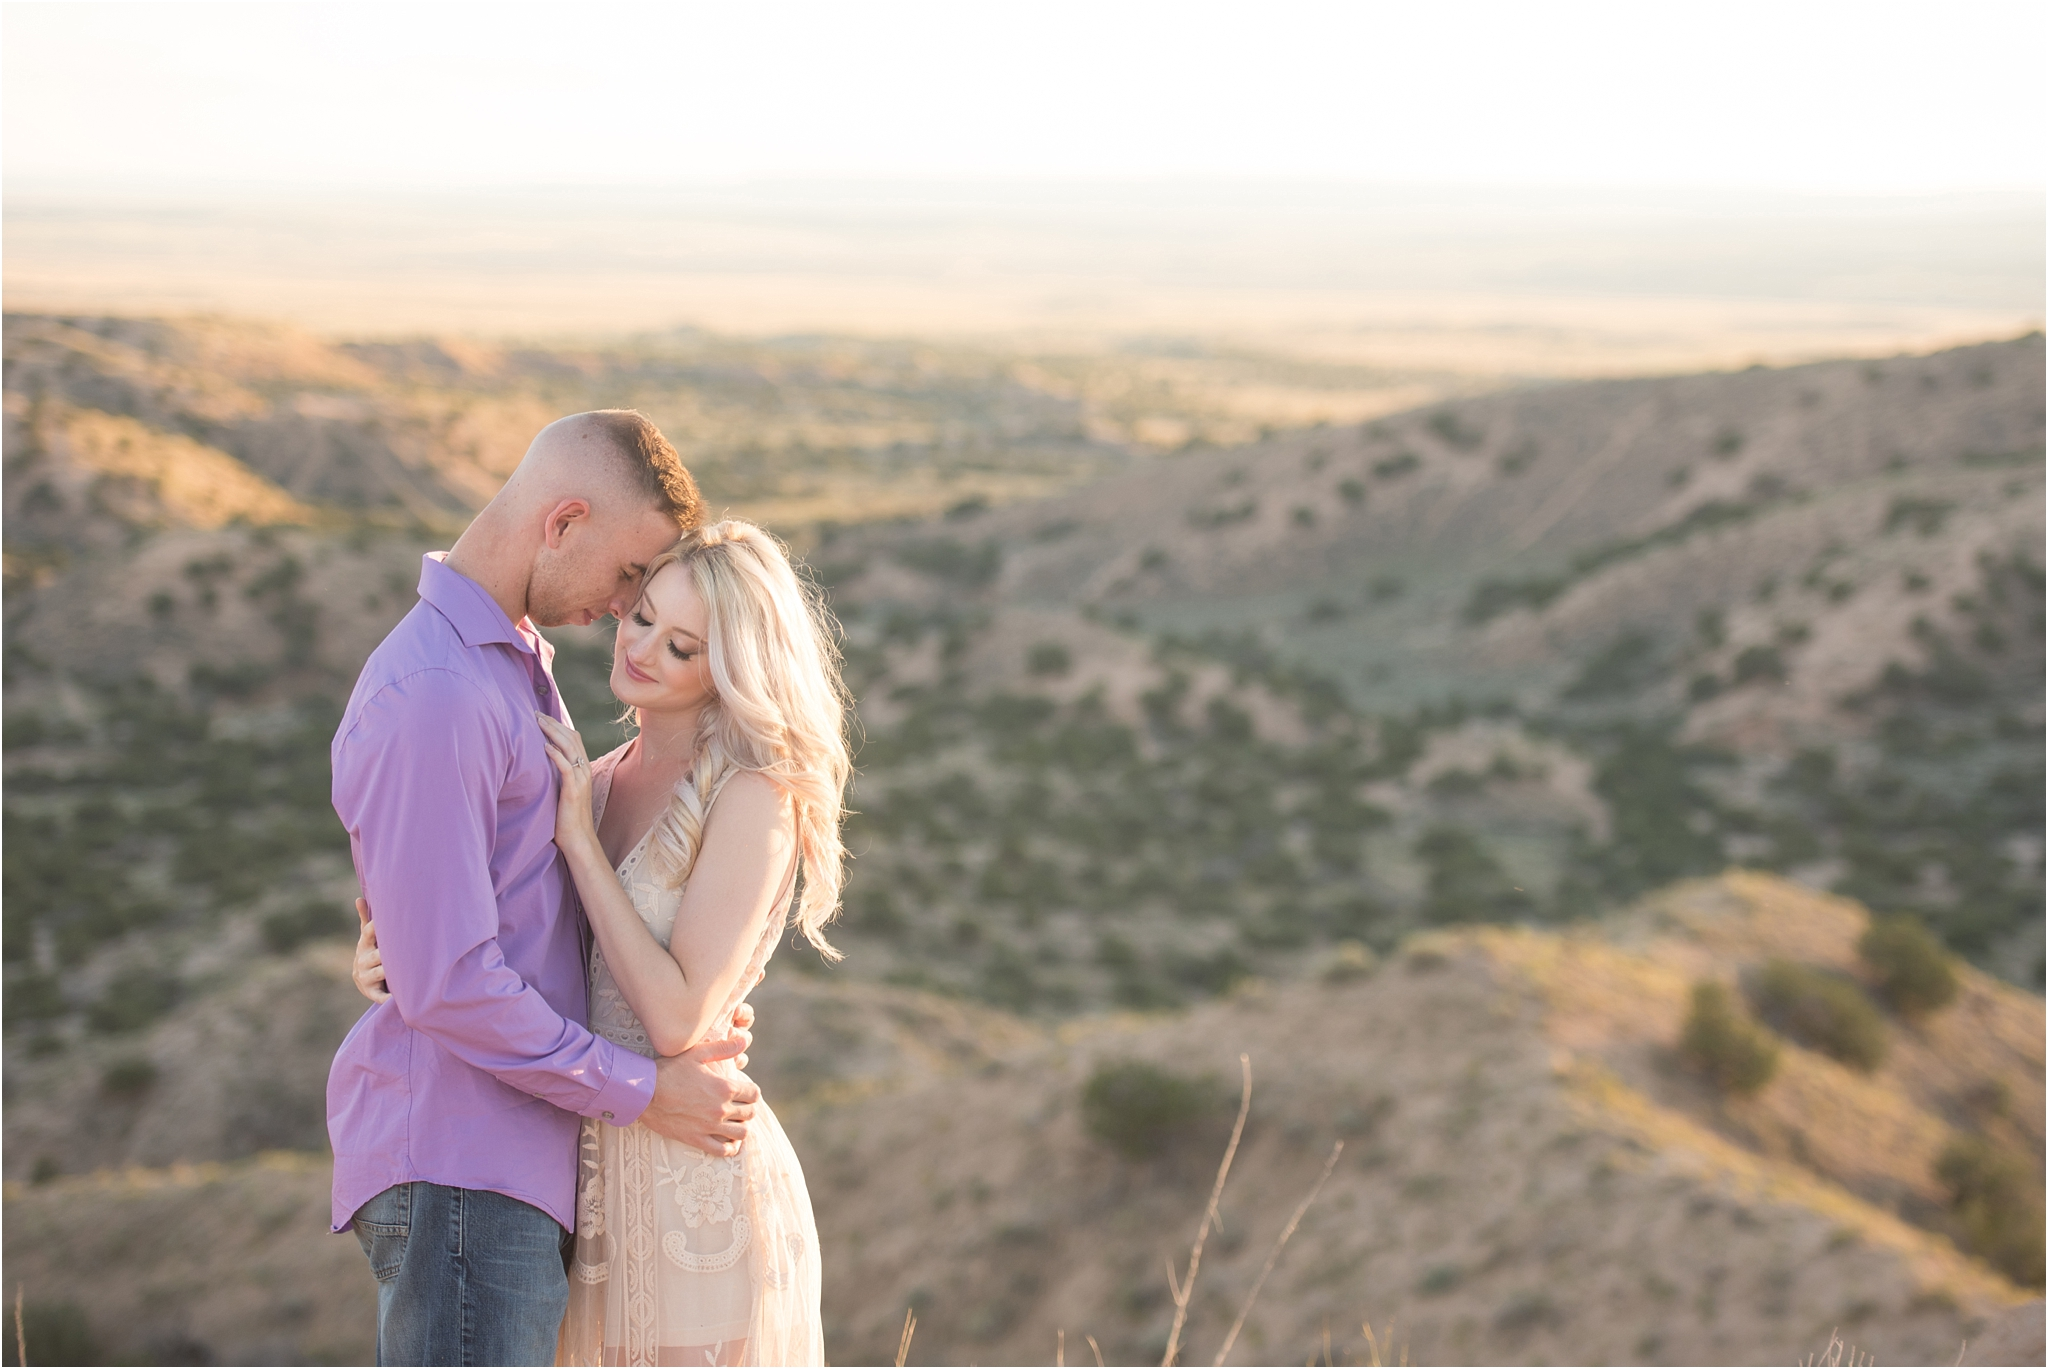 kayla kitts photography - new mexico wedding photographer - albuquerque engagement session_0014.jpg